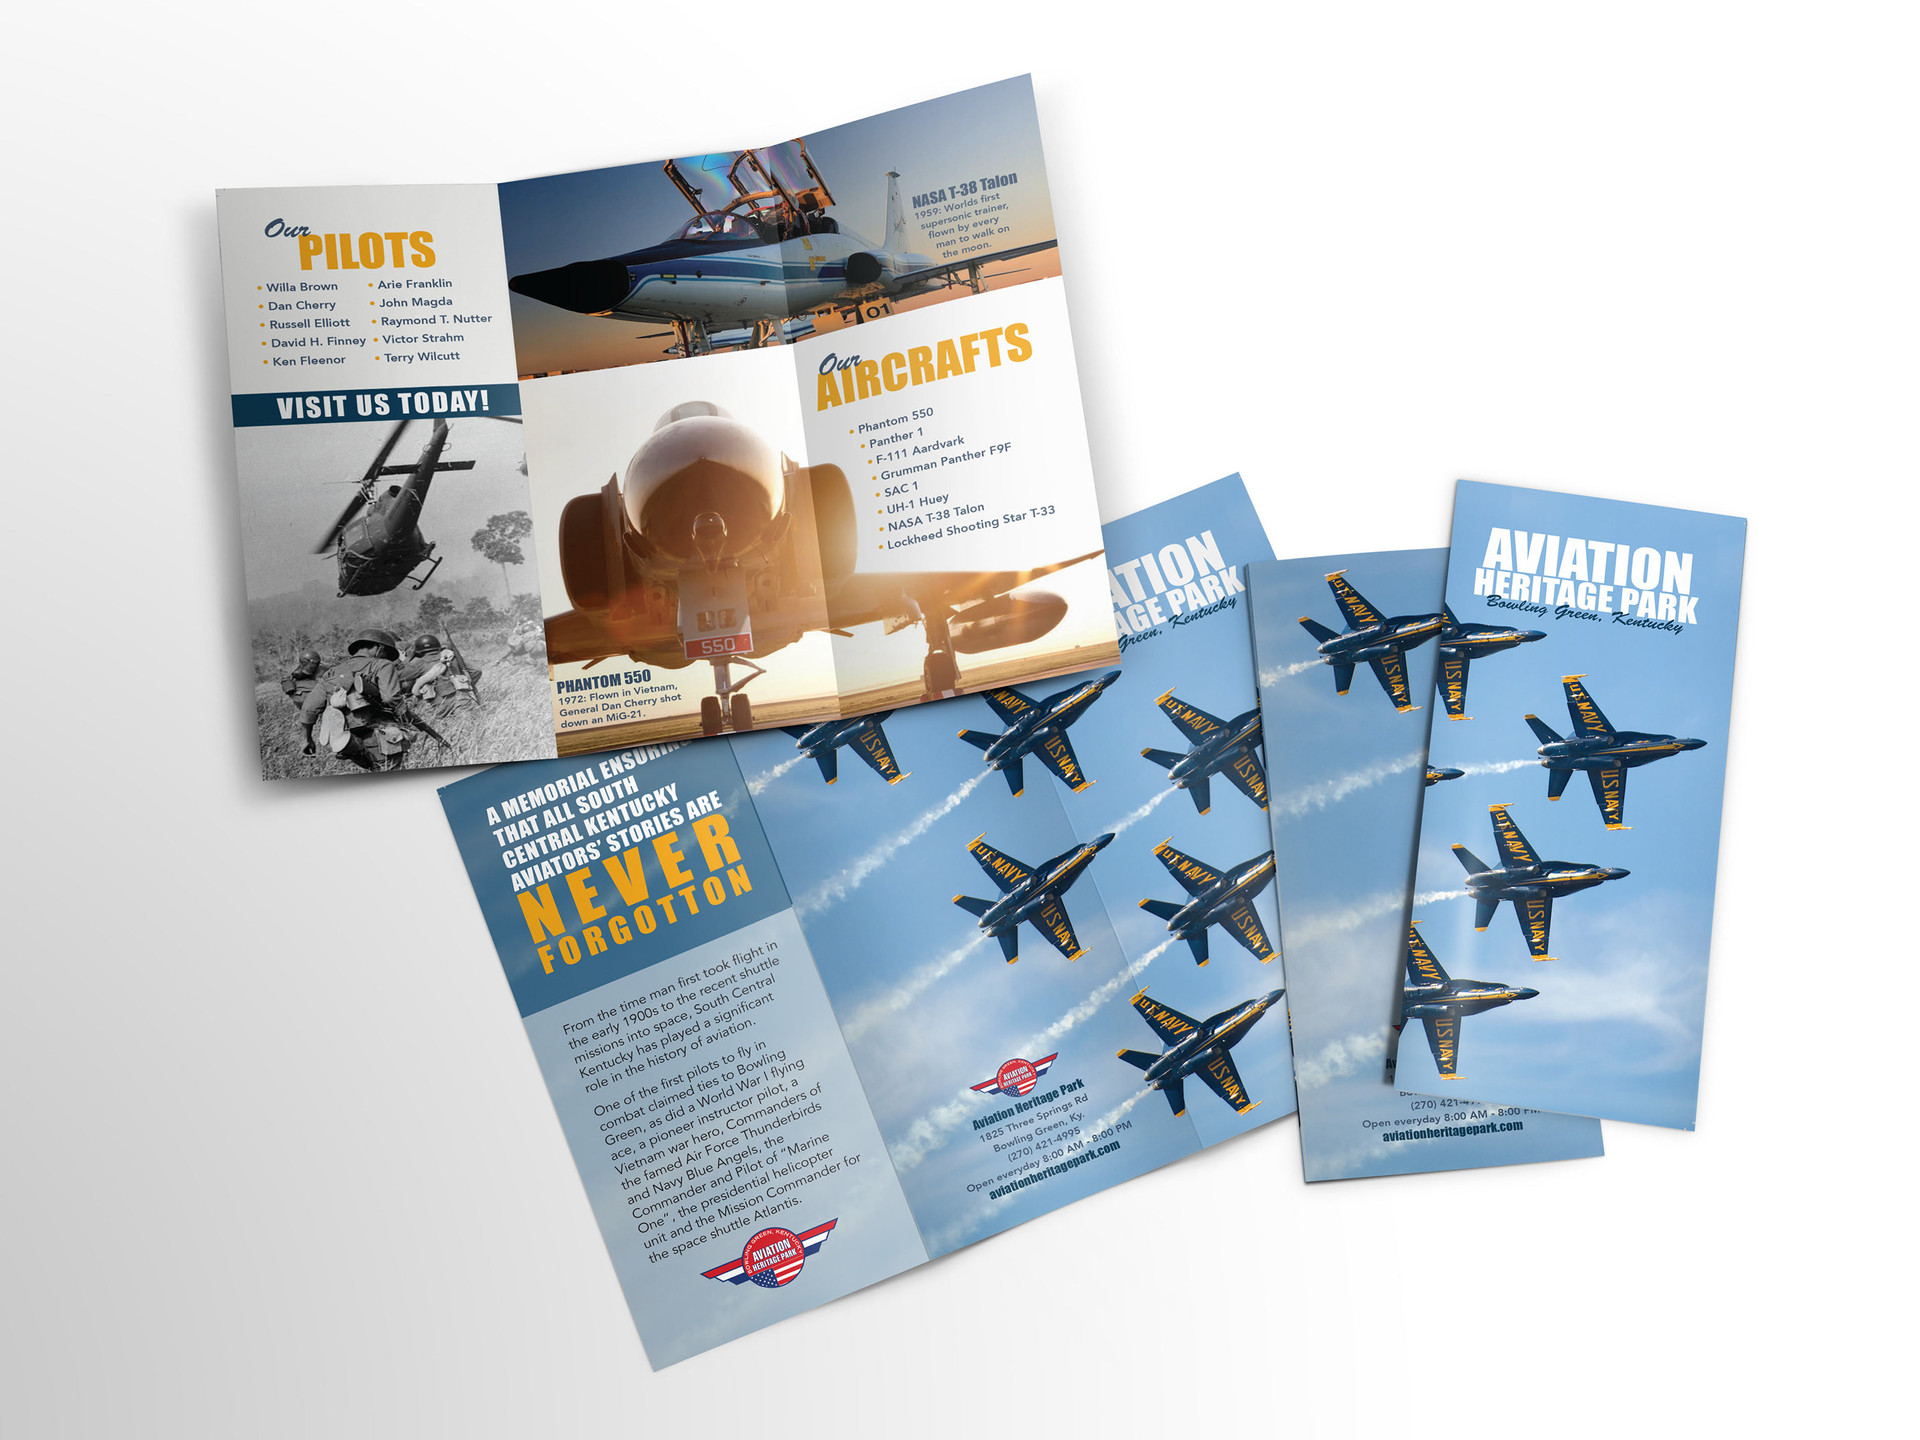 Aviation Heritage Park Brochure